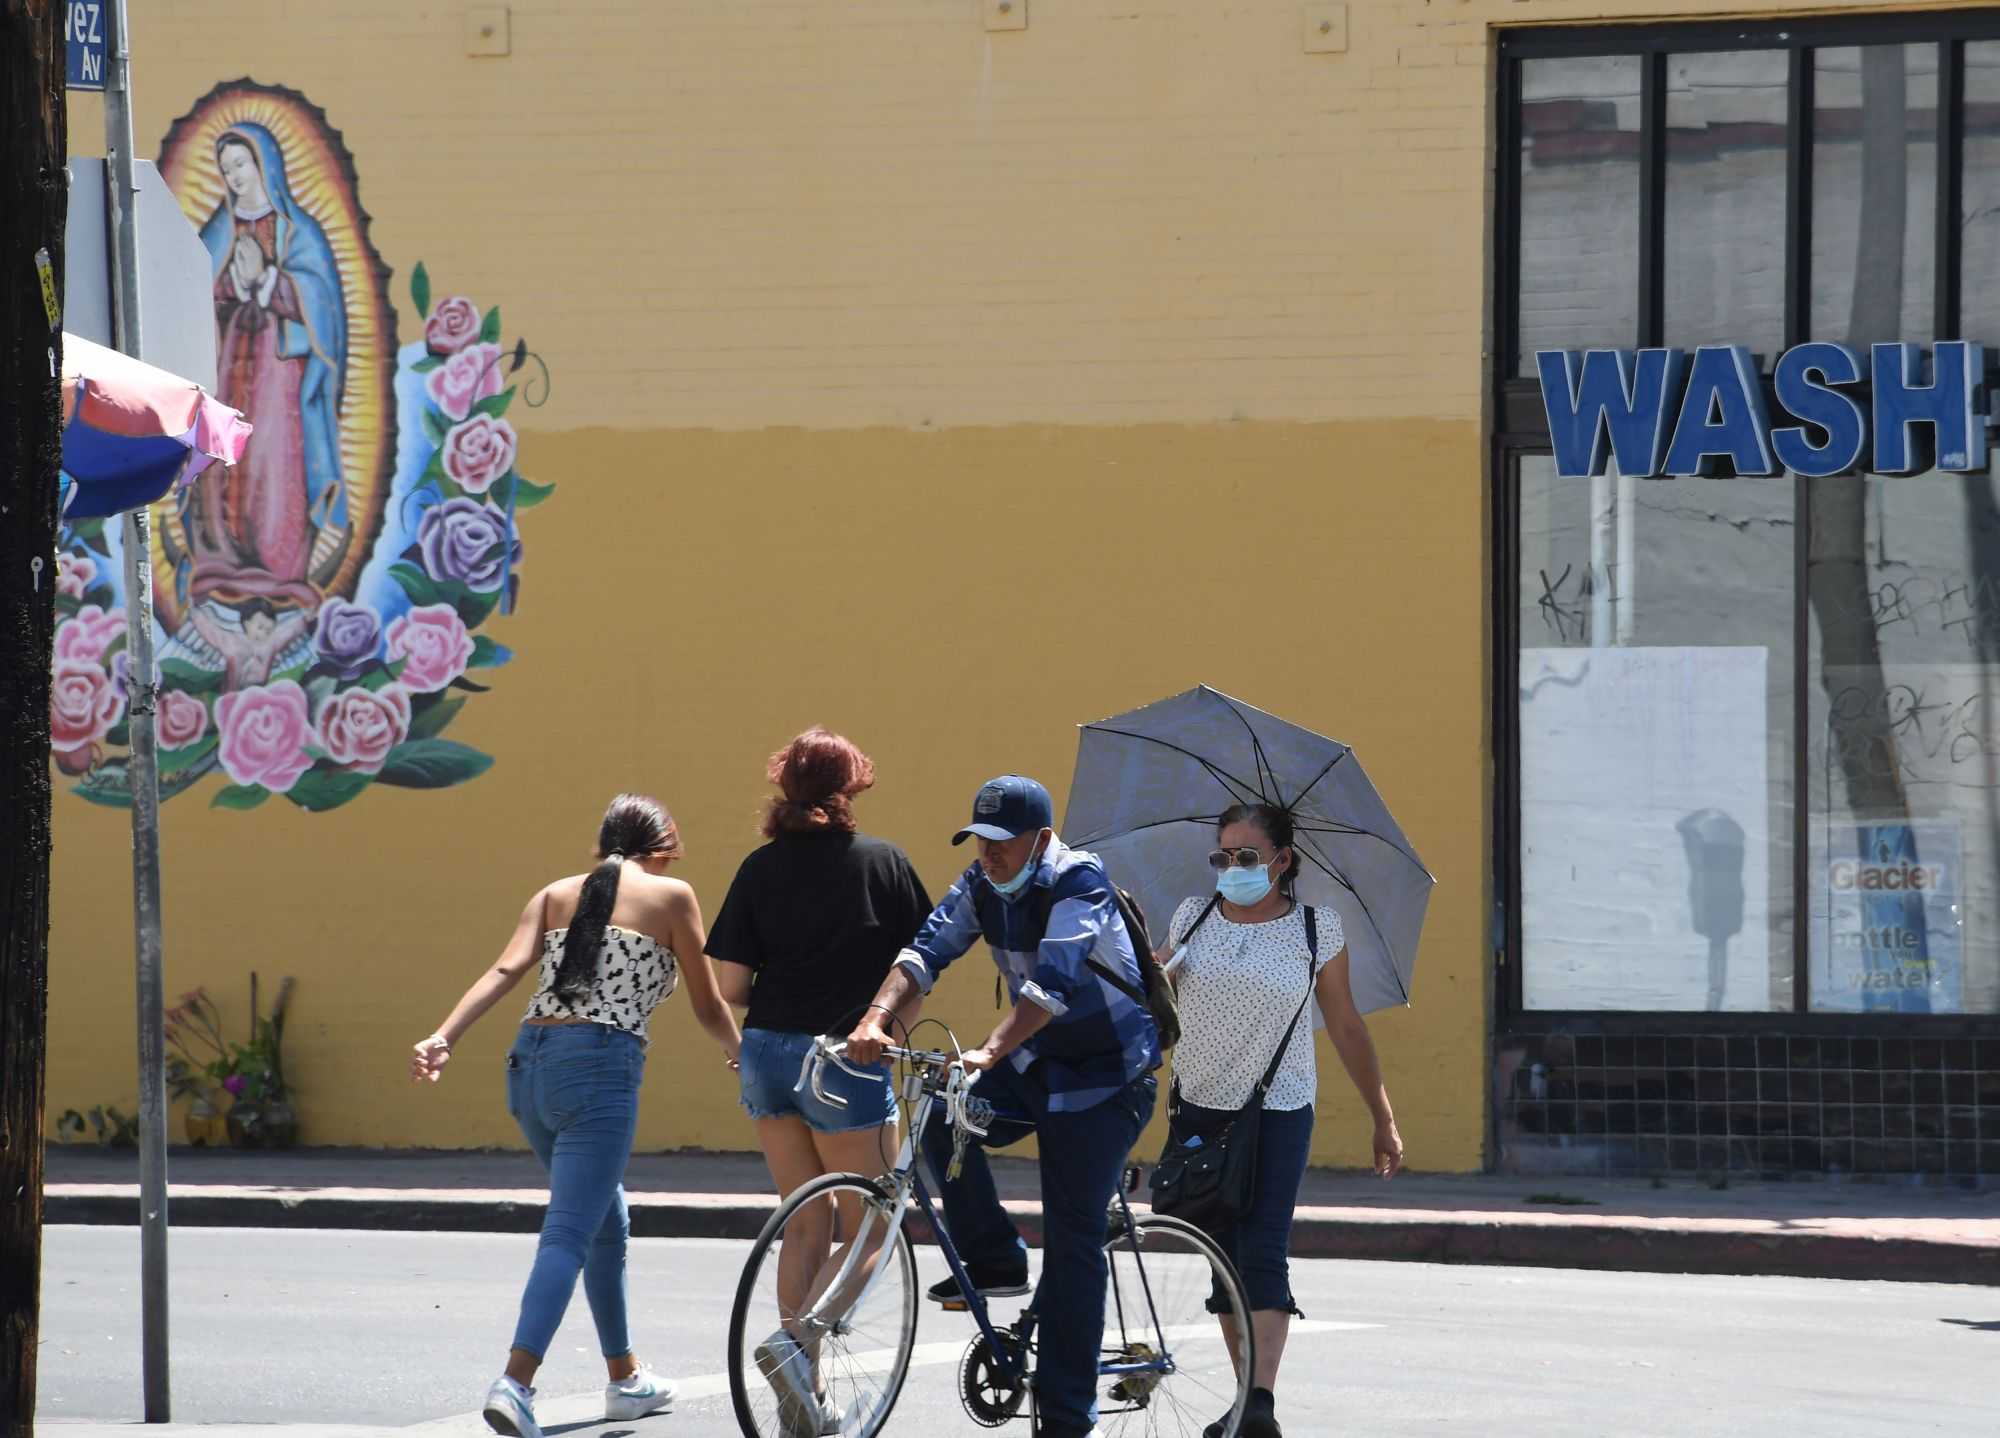 People cross the street in the largely Latino neighborhood of East Los Angeles, August 7, 2020 in Los Angeles, California during the coronavirus pandemic. (Robyn Beck / AFP) (Photo by ROBYN BECK/AFP via Getty Images)